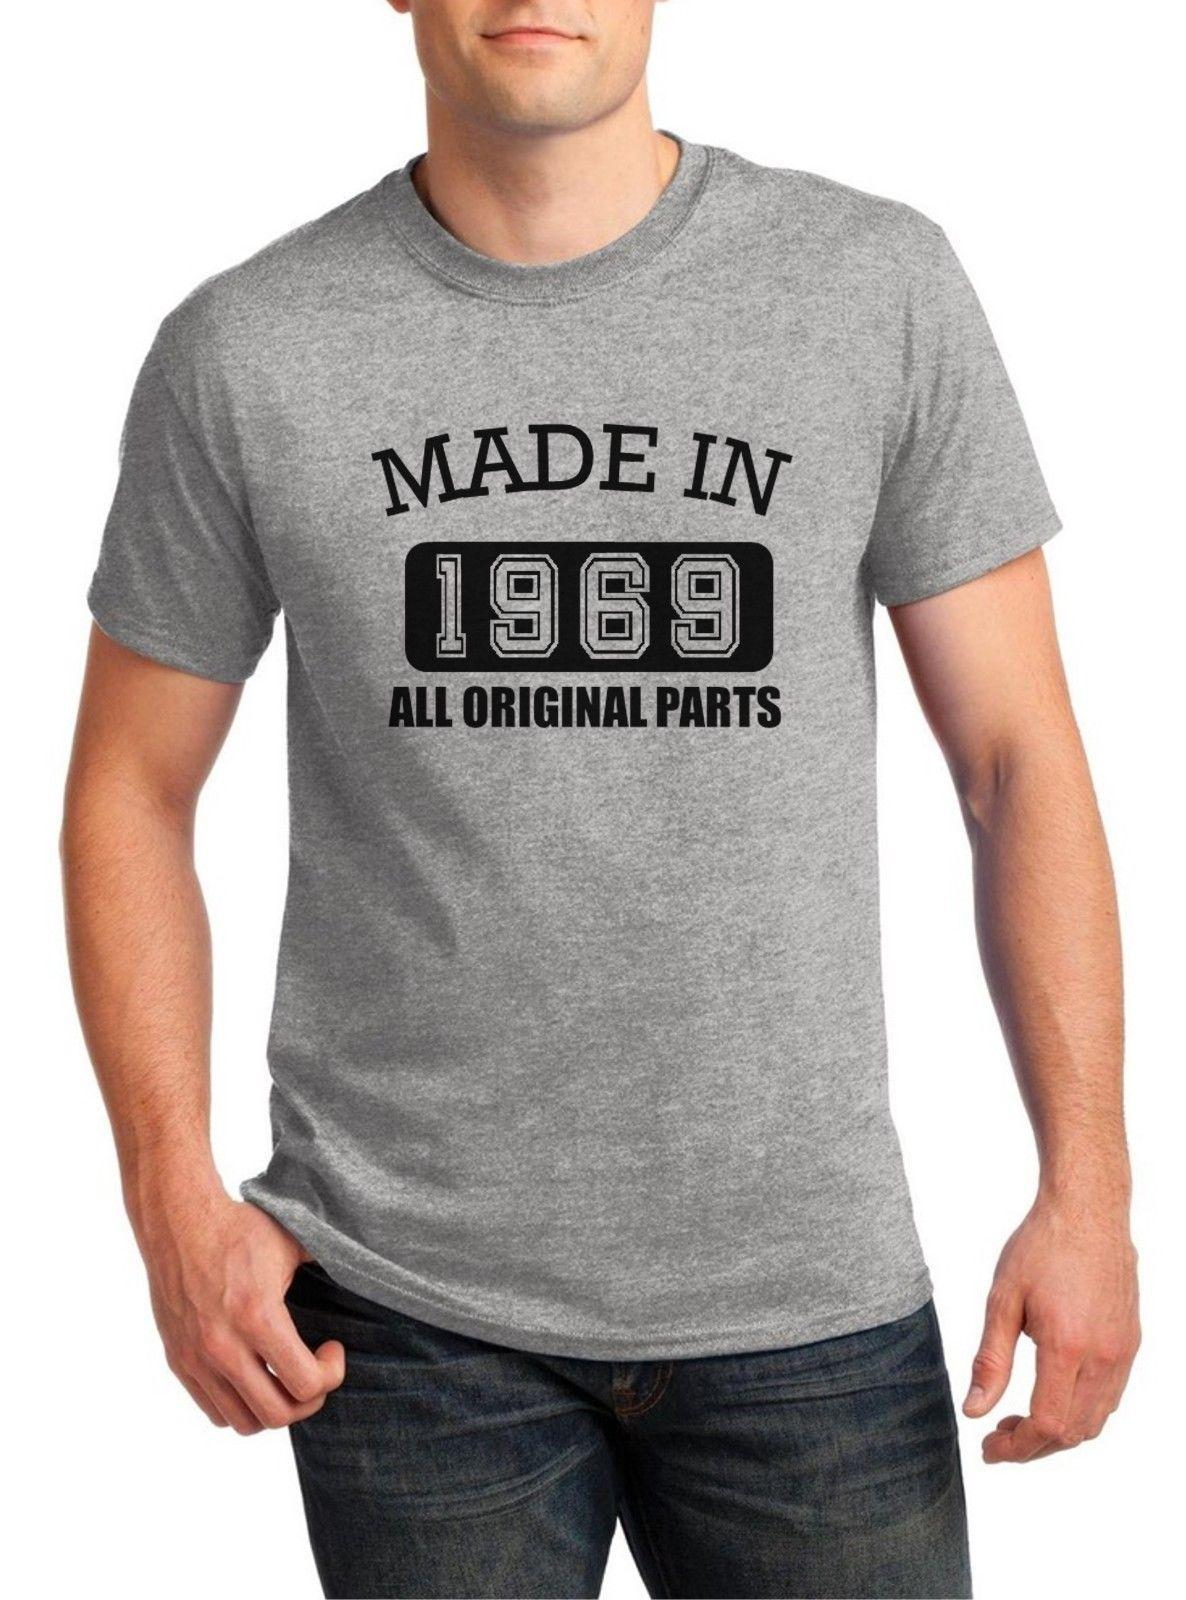 Made In 1969 All Original Parts T Shirt 50th Birthday Party Bday Gift Brand Clothing Tee Print Tops Shirts Men Best Funny